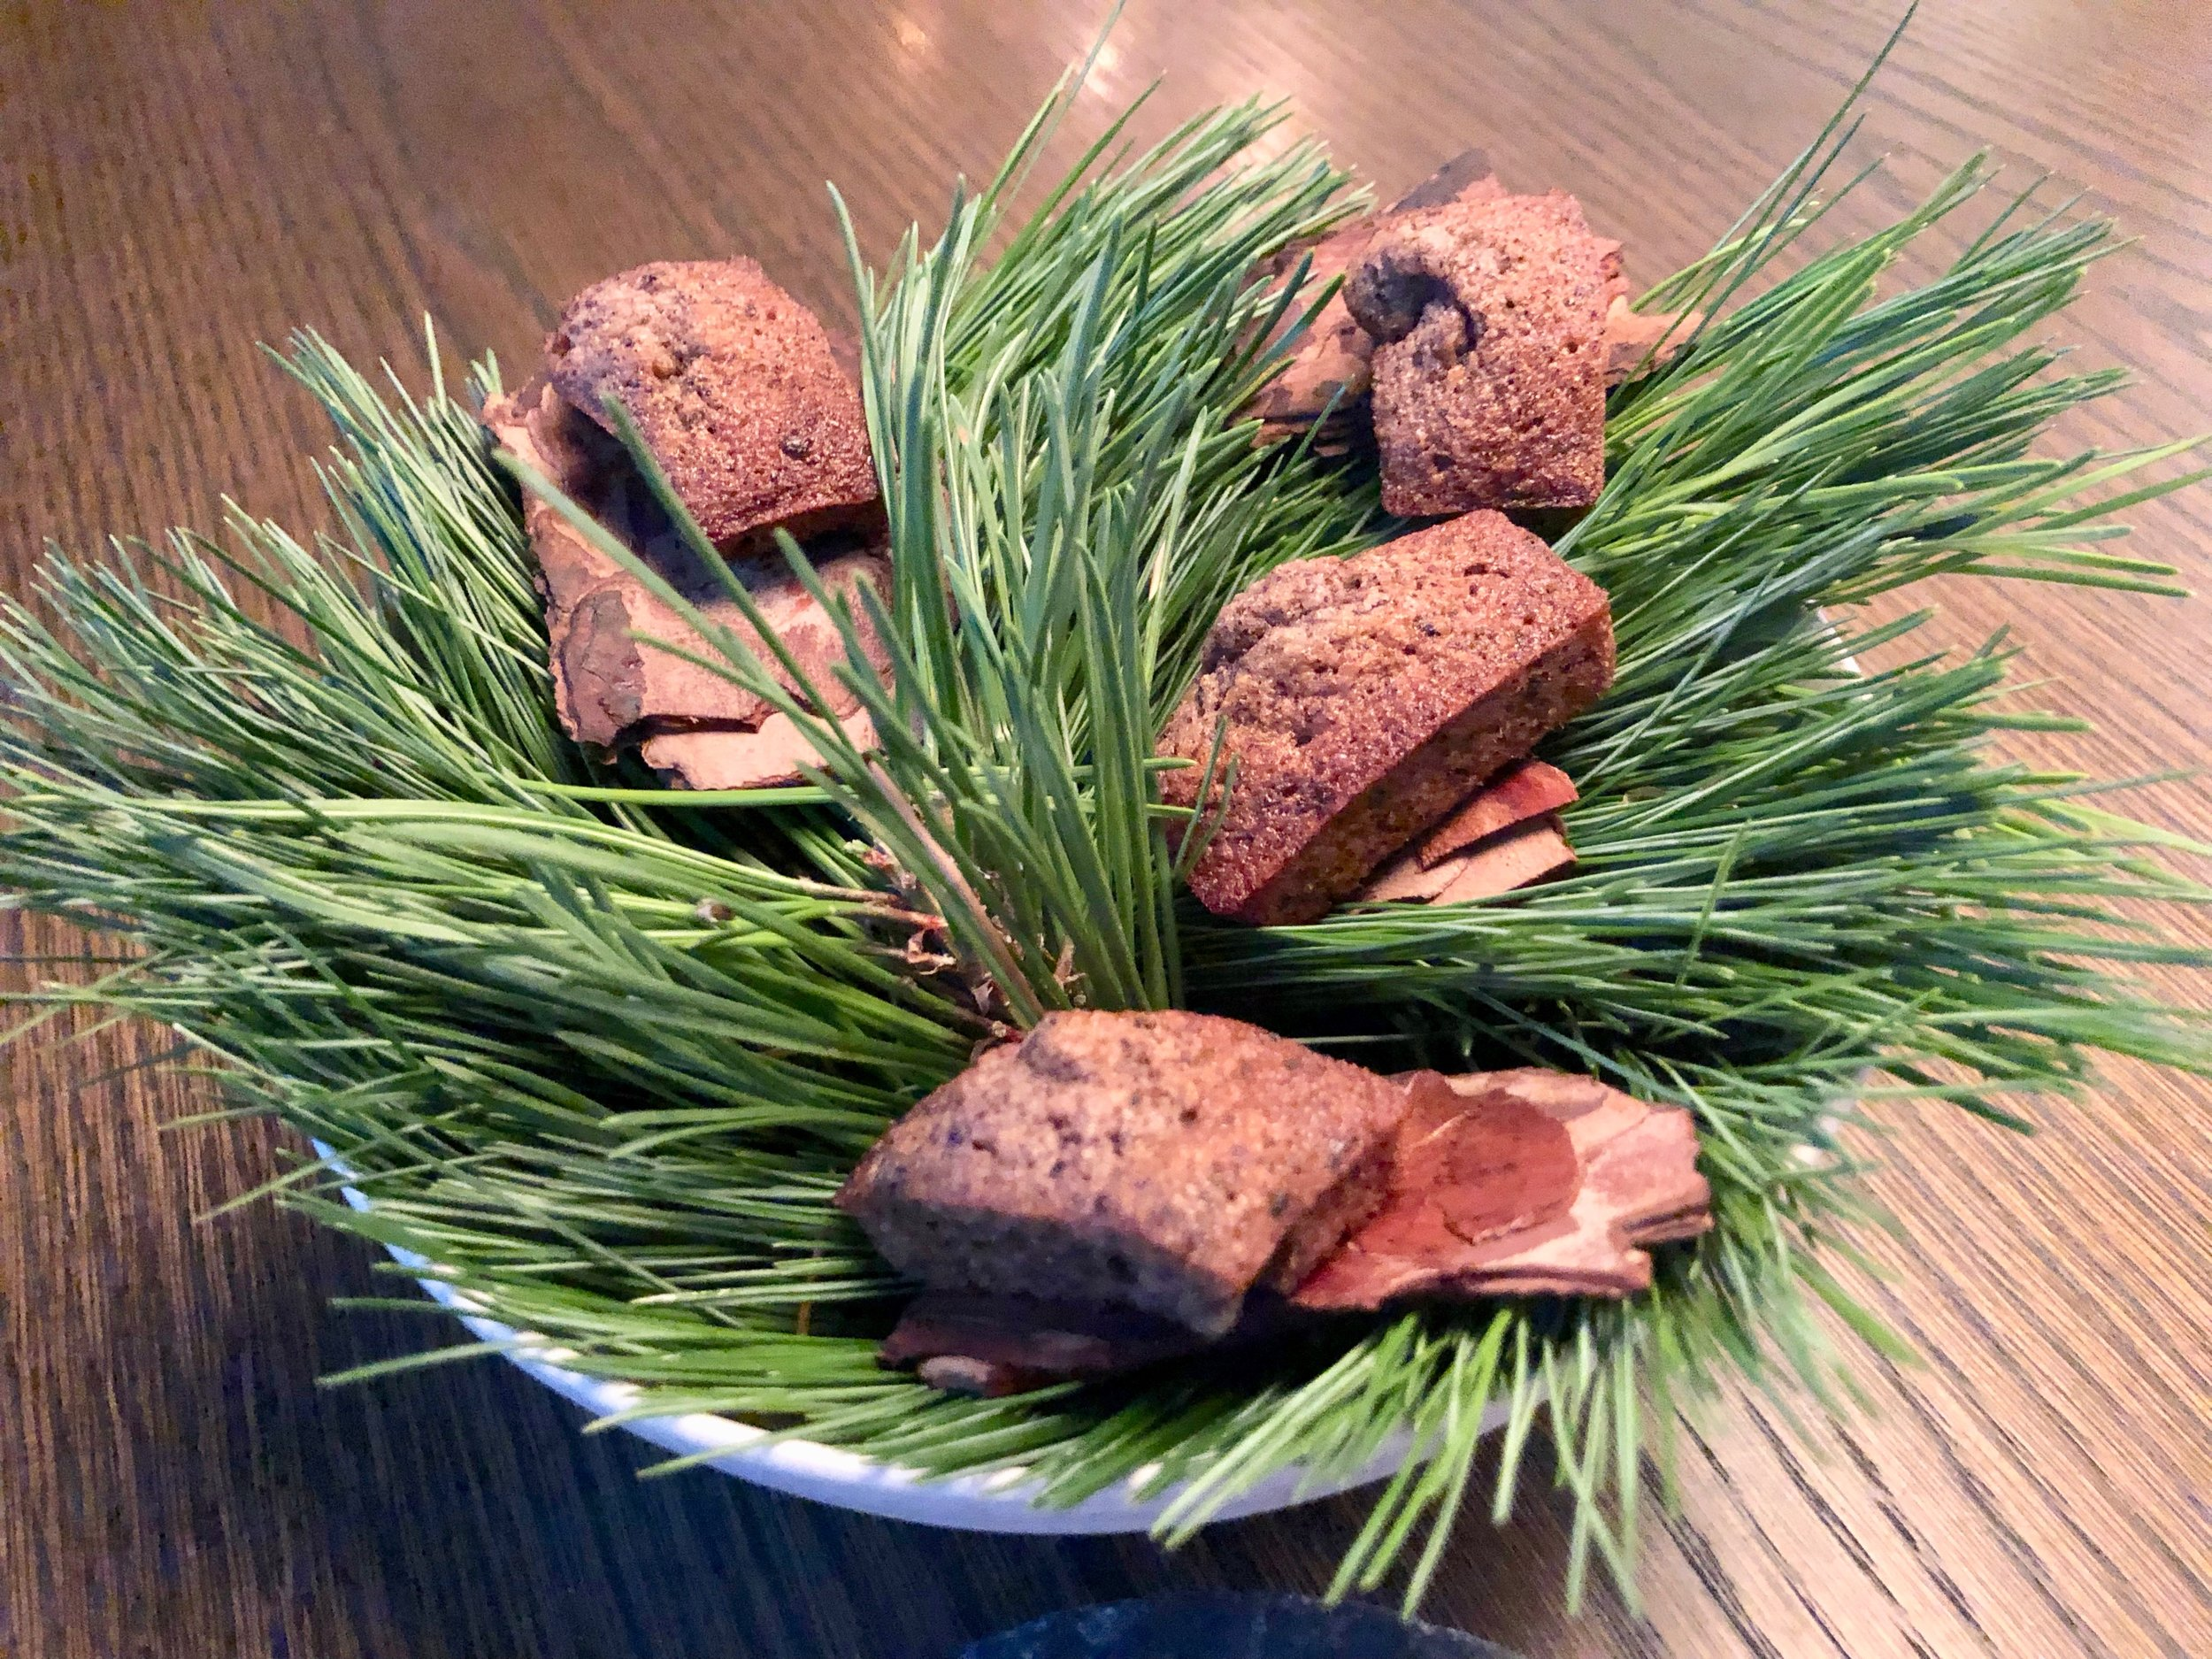 In addition to two sweet sugar-coated cherry jelly candies, our meal ended with a surprise plate of miniature cakes made with grounded pine bark blended into a cake mix and baked. The flavor was wondrous, woodsy and herbal while mildly sweet. Astounding. Just astounding.